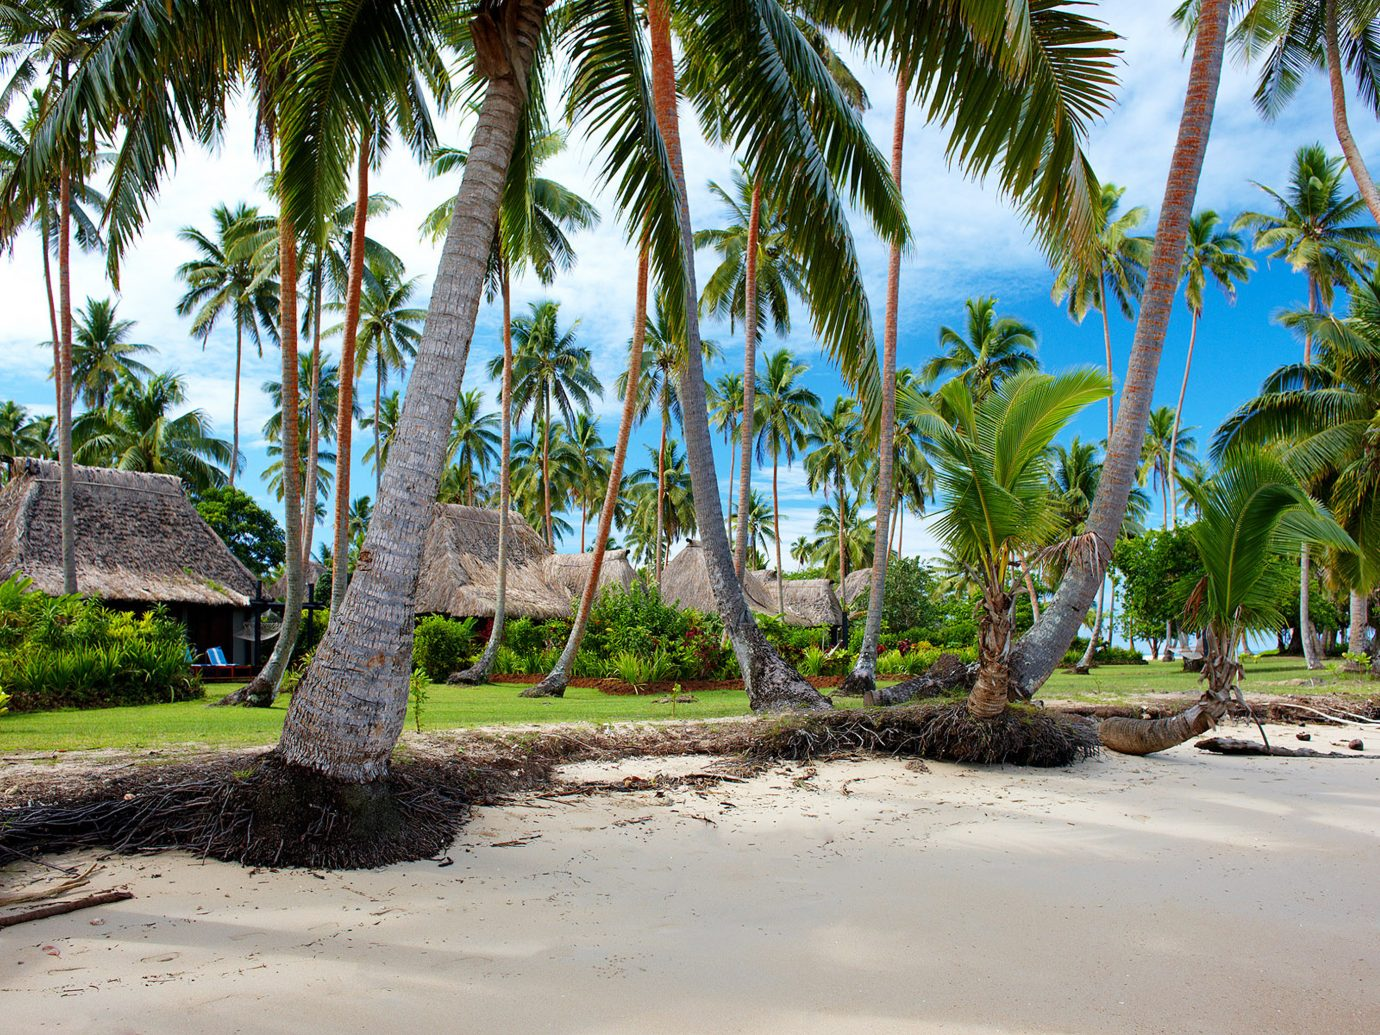 Beach at Jean-Michel Cousteau Resort, Fiji